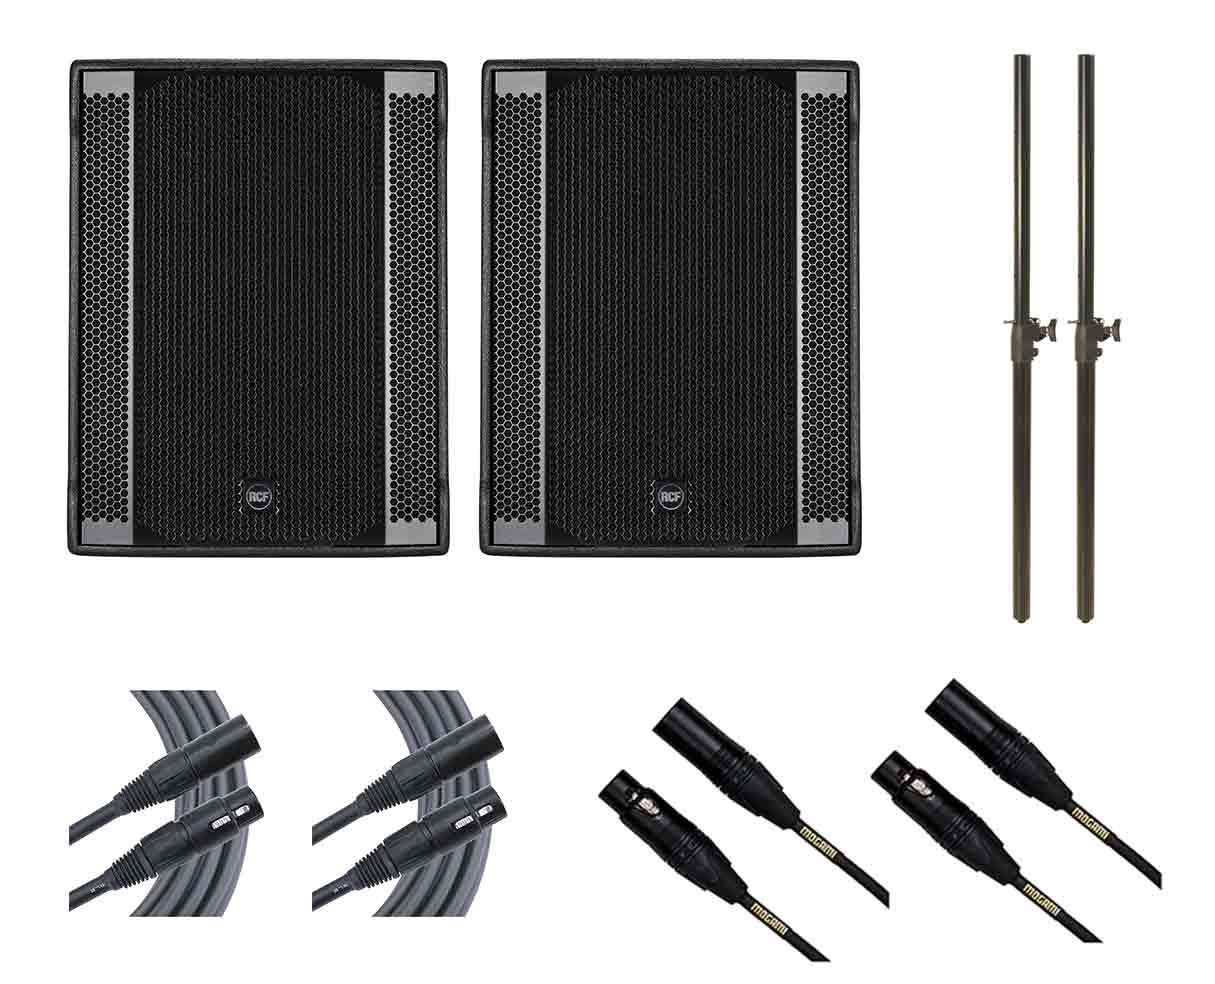 2x RCF Sub 708-AS II + Subwoofer Poles + Mogami Cables